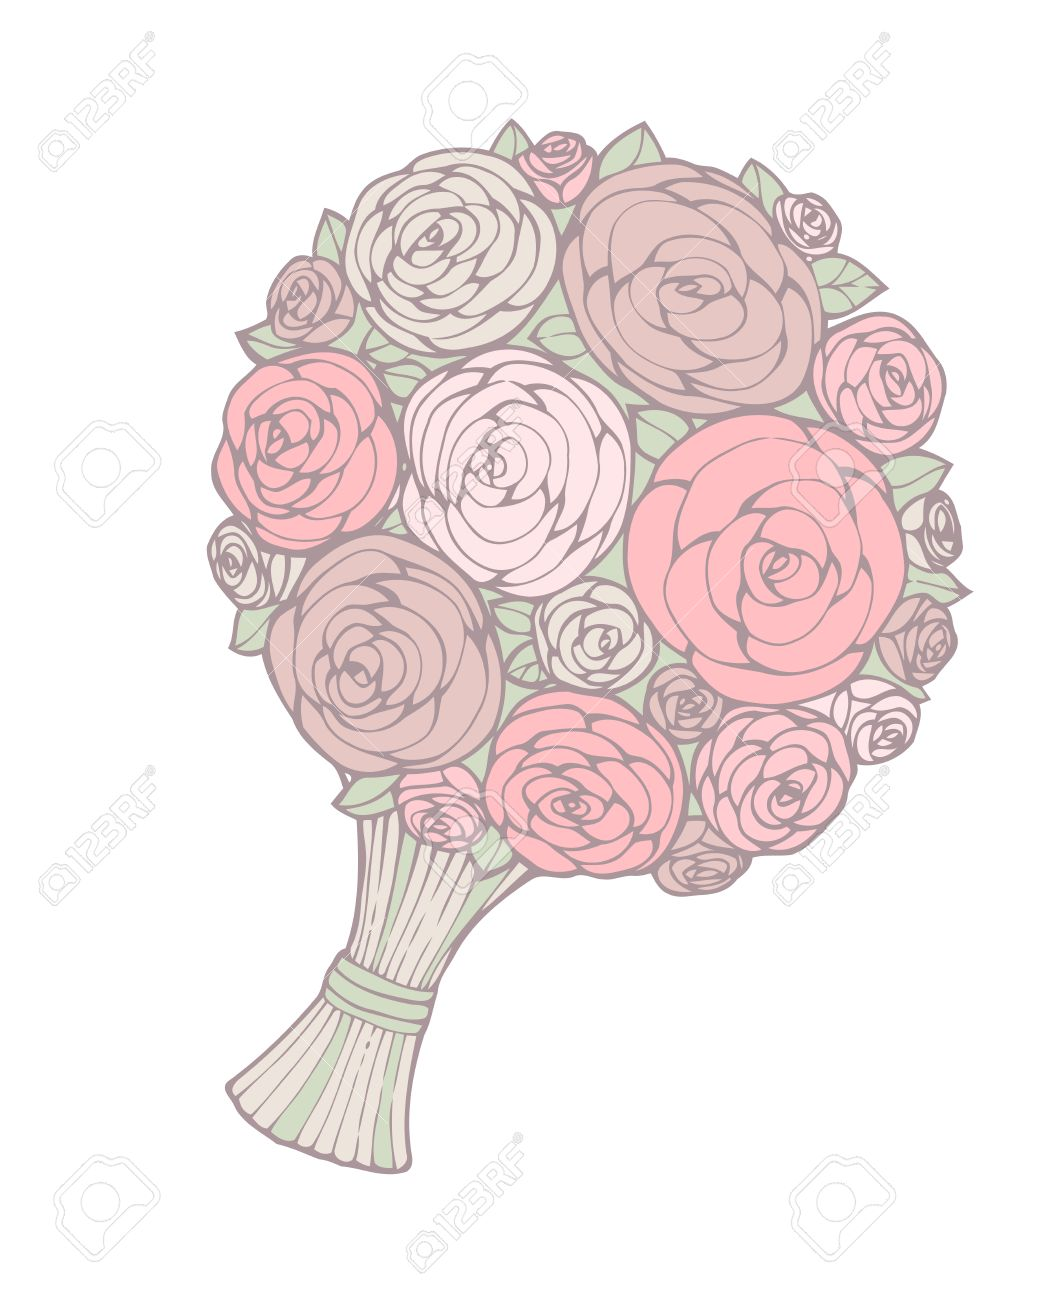 Floral Wedding Bouquet For Your Design Illustration Royalty Free